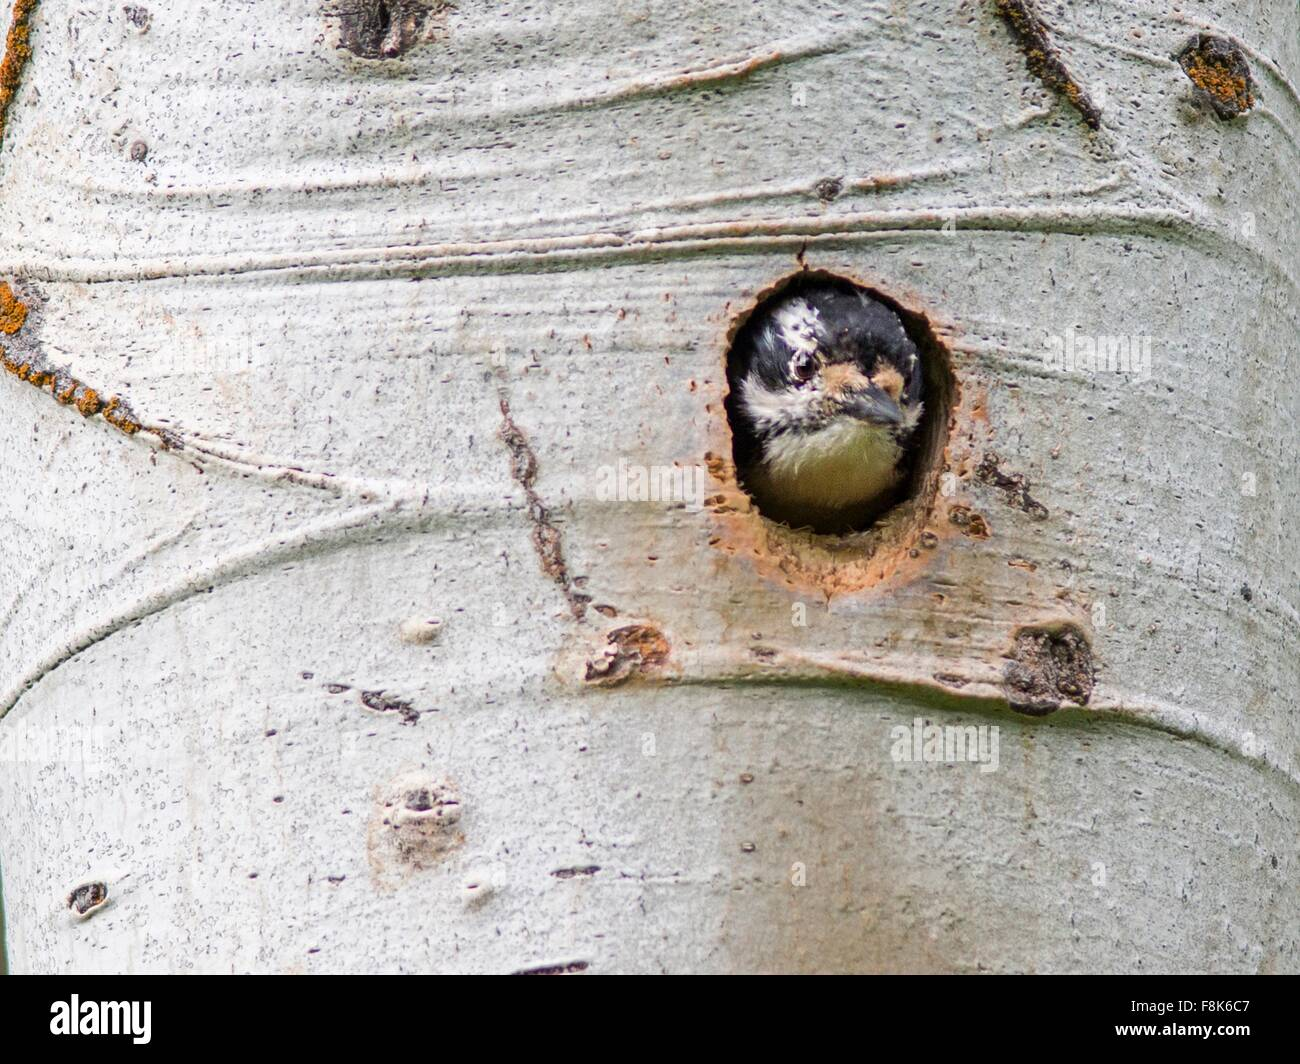 Woodpecker peering out of hole in birch tree, Yellowstone National Park, Wyoming, USA - Stock Image